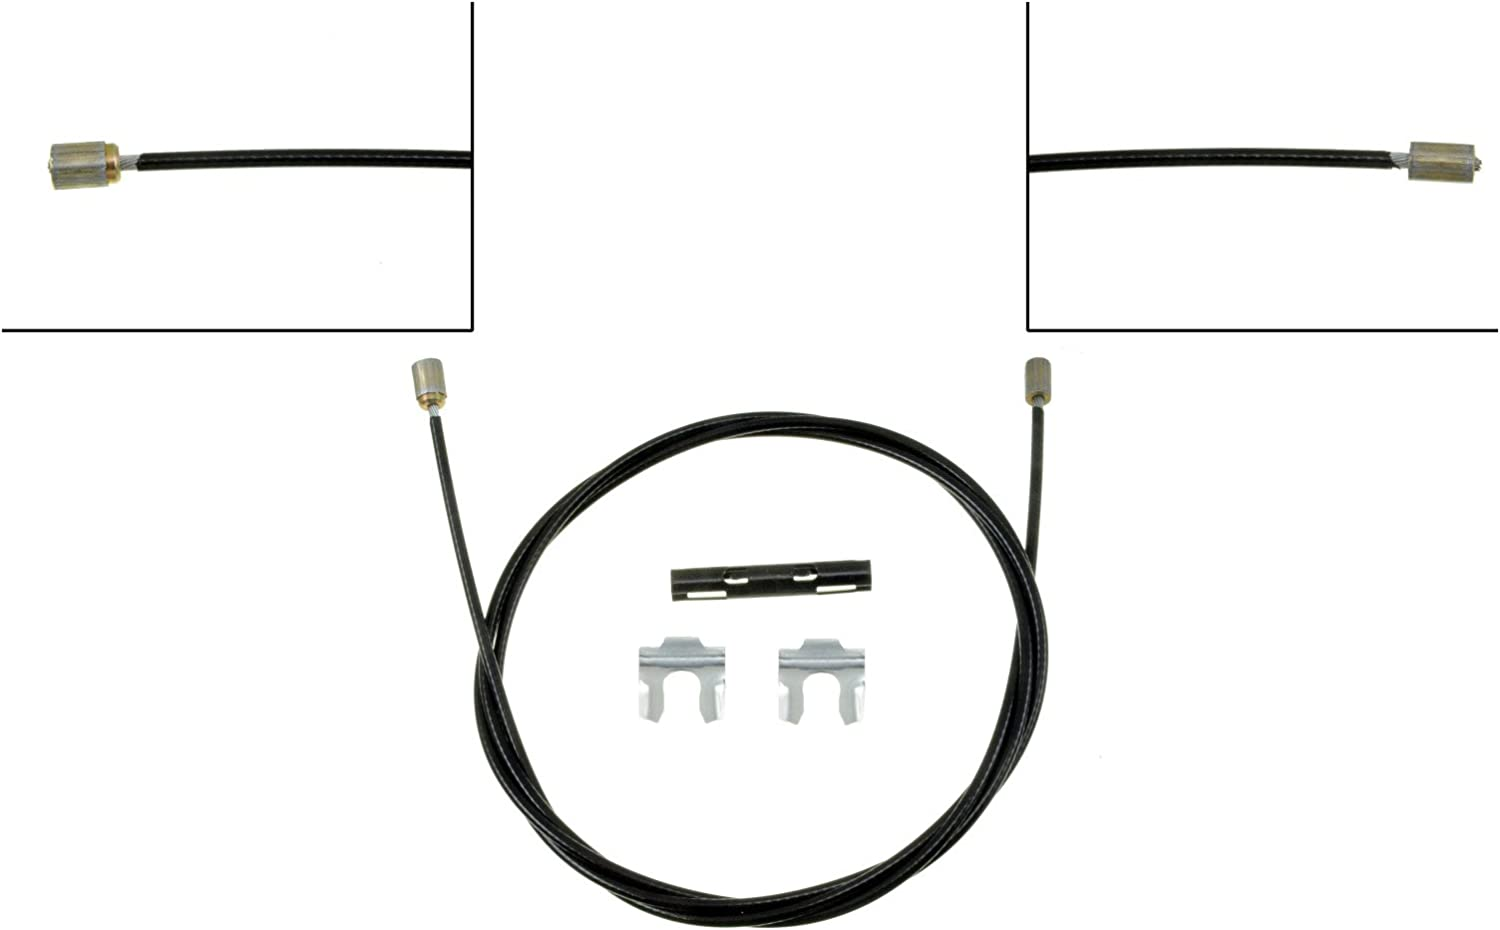 Parking Brake Cable Front Dorman C92632 fits 73-75 Ford F-250